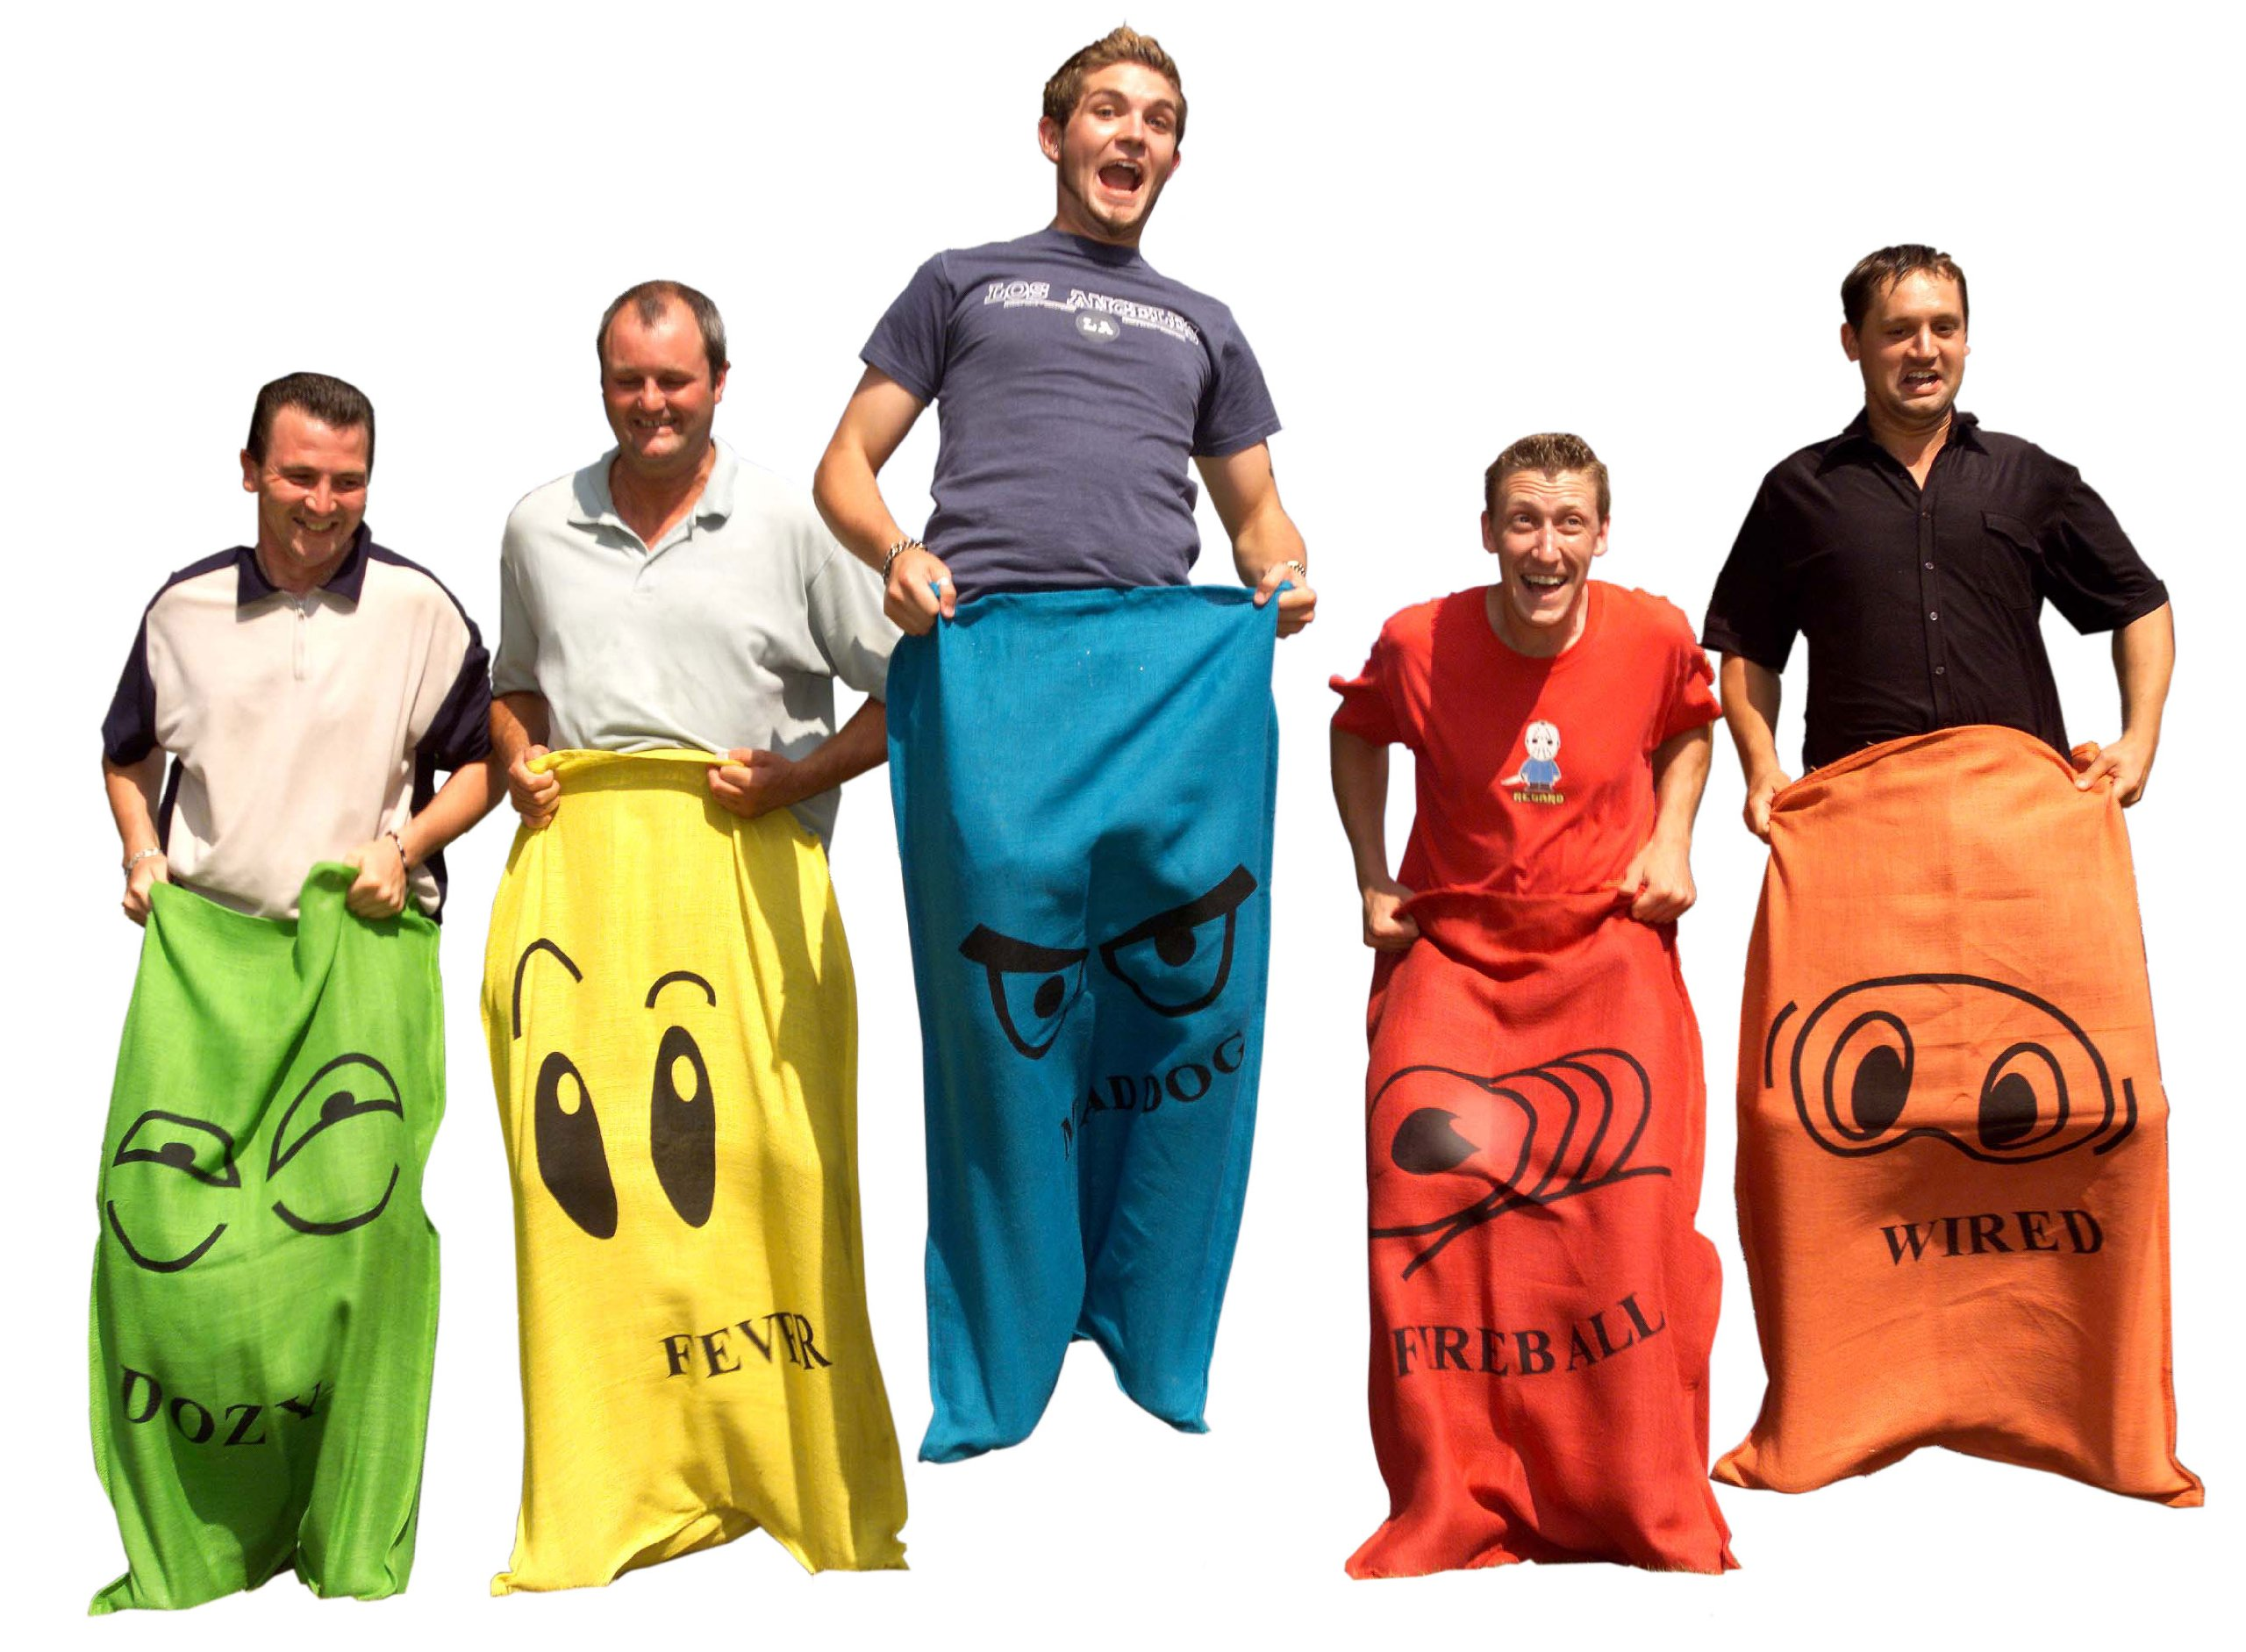 Garden Games Sack Race - 5 Adult Sized Hessian Bags for Racing by Garden Games